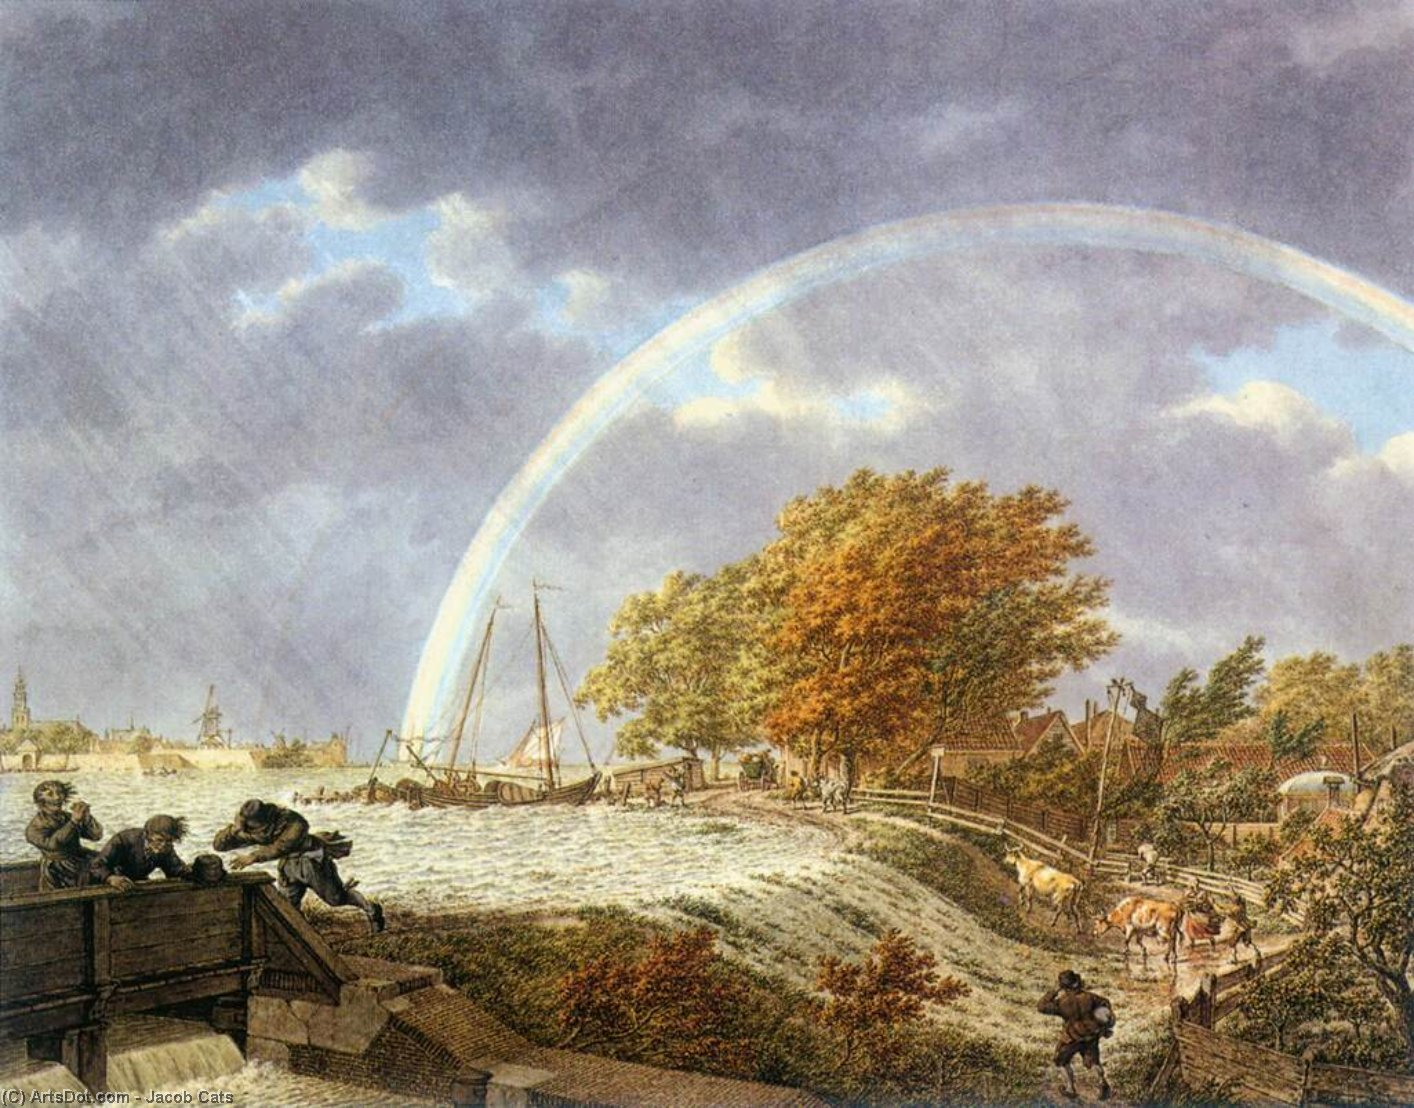 Wikioo.org - The Encyclopedia of Fine Arts - Painting, Artwork by Jacob Cats - Autumn Landscape with Rainbow